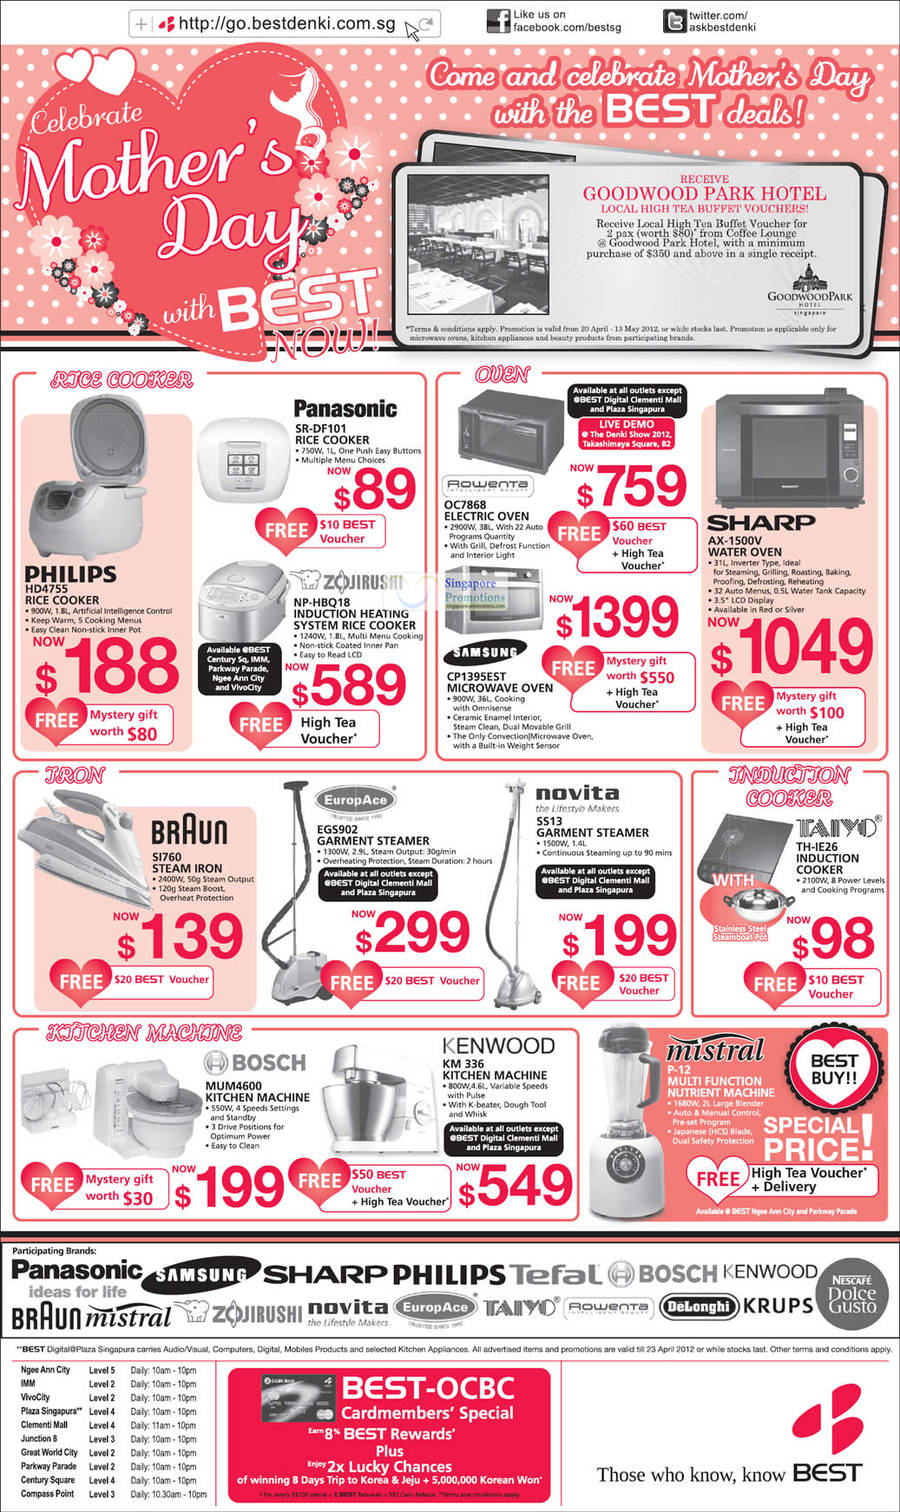 PHILIPS HD4755 RICE COOKER, BRAUN SI760 STEAM IRON, BOSCH MUM4600 KITCHEN MACHINE, Europace EGS902 GARMENT STEAMER, ZOJIRUSHI NP-HBQ18 RICE COOKER, Panasonic SR-DF101 RICE COOKER, Rowenta OC7868 ELECTRIC OVEN, Samsung CP1395EST MICROWAVE OVEN, Novita SS13 GARMENT STEAMER, KENWOOD KM336 KITCHEN MACHINE, Taiyo TH-IE26 INDUCTION COOKER, SHARP AX-1500V WATER OVEN